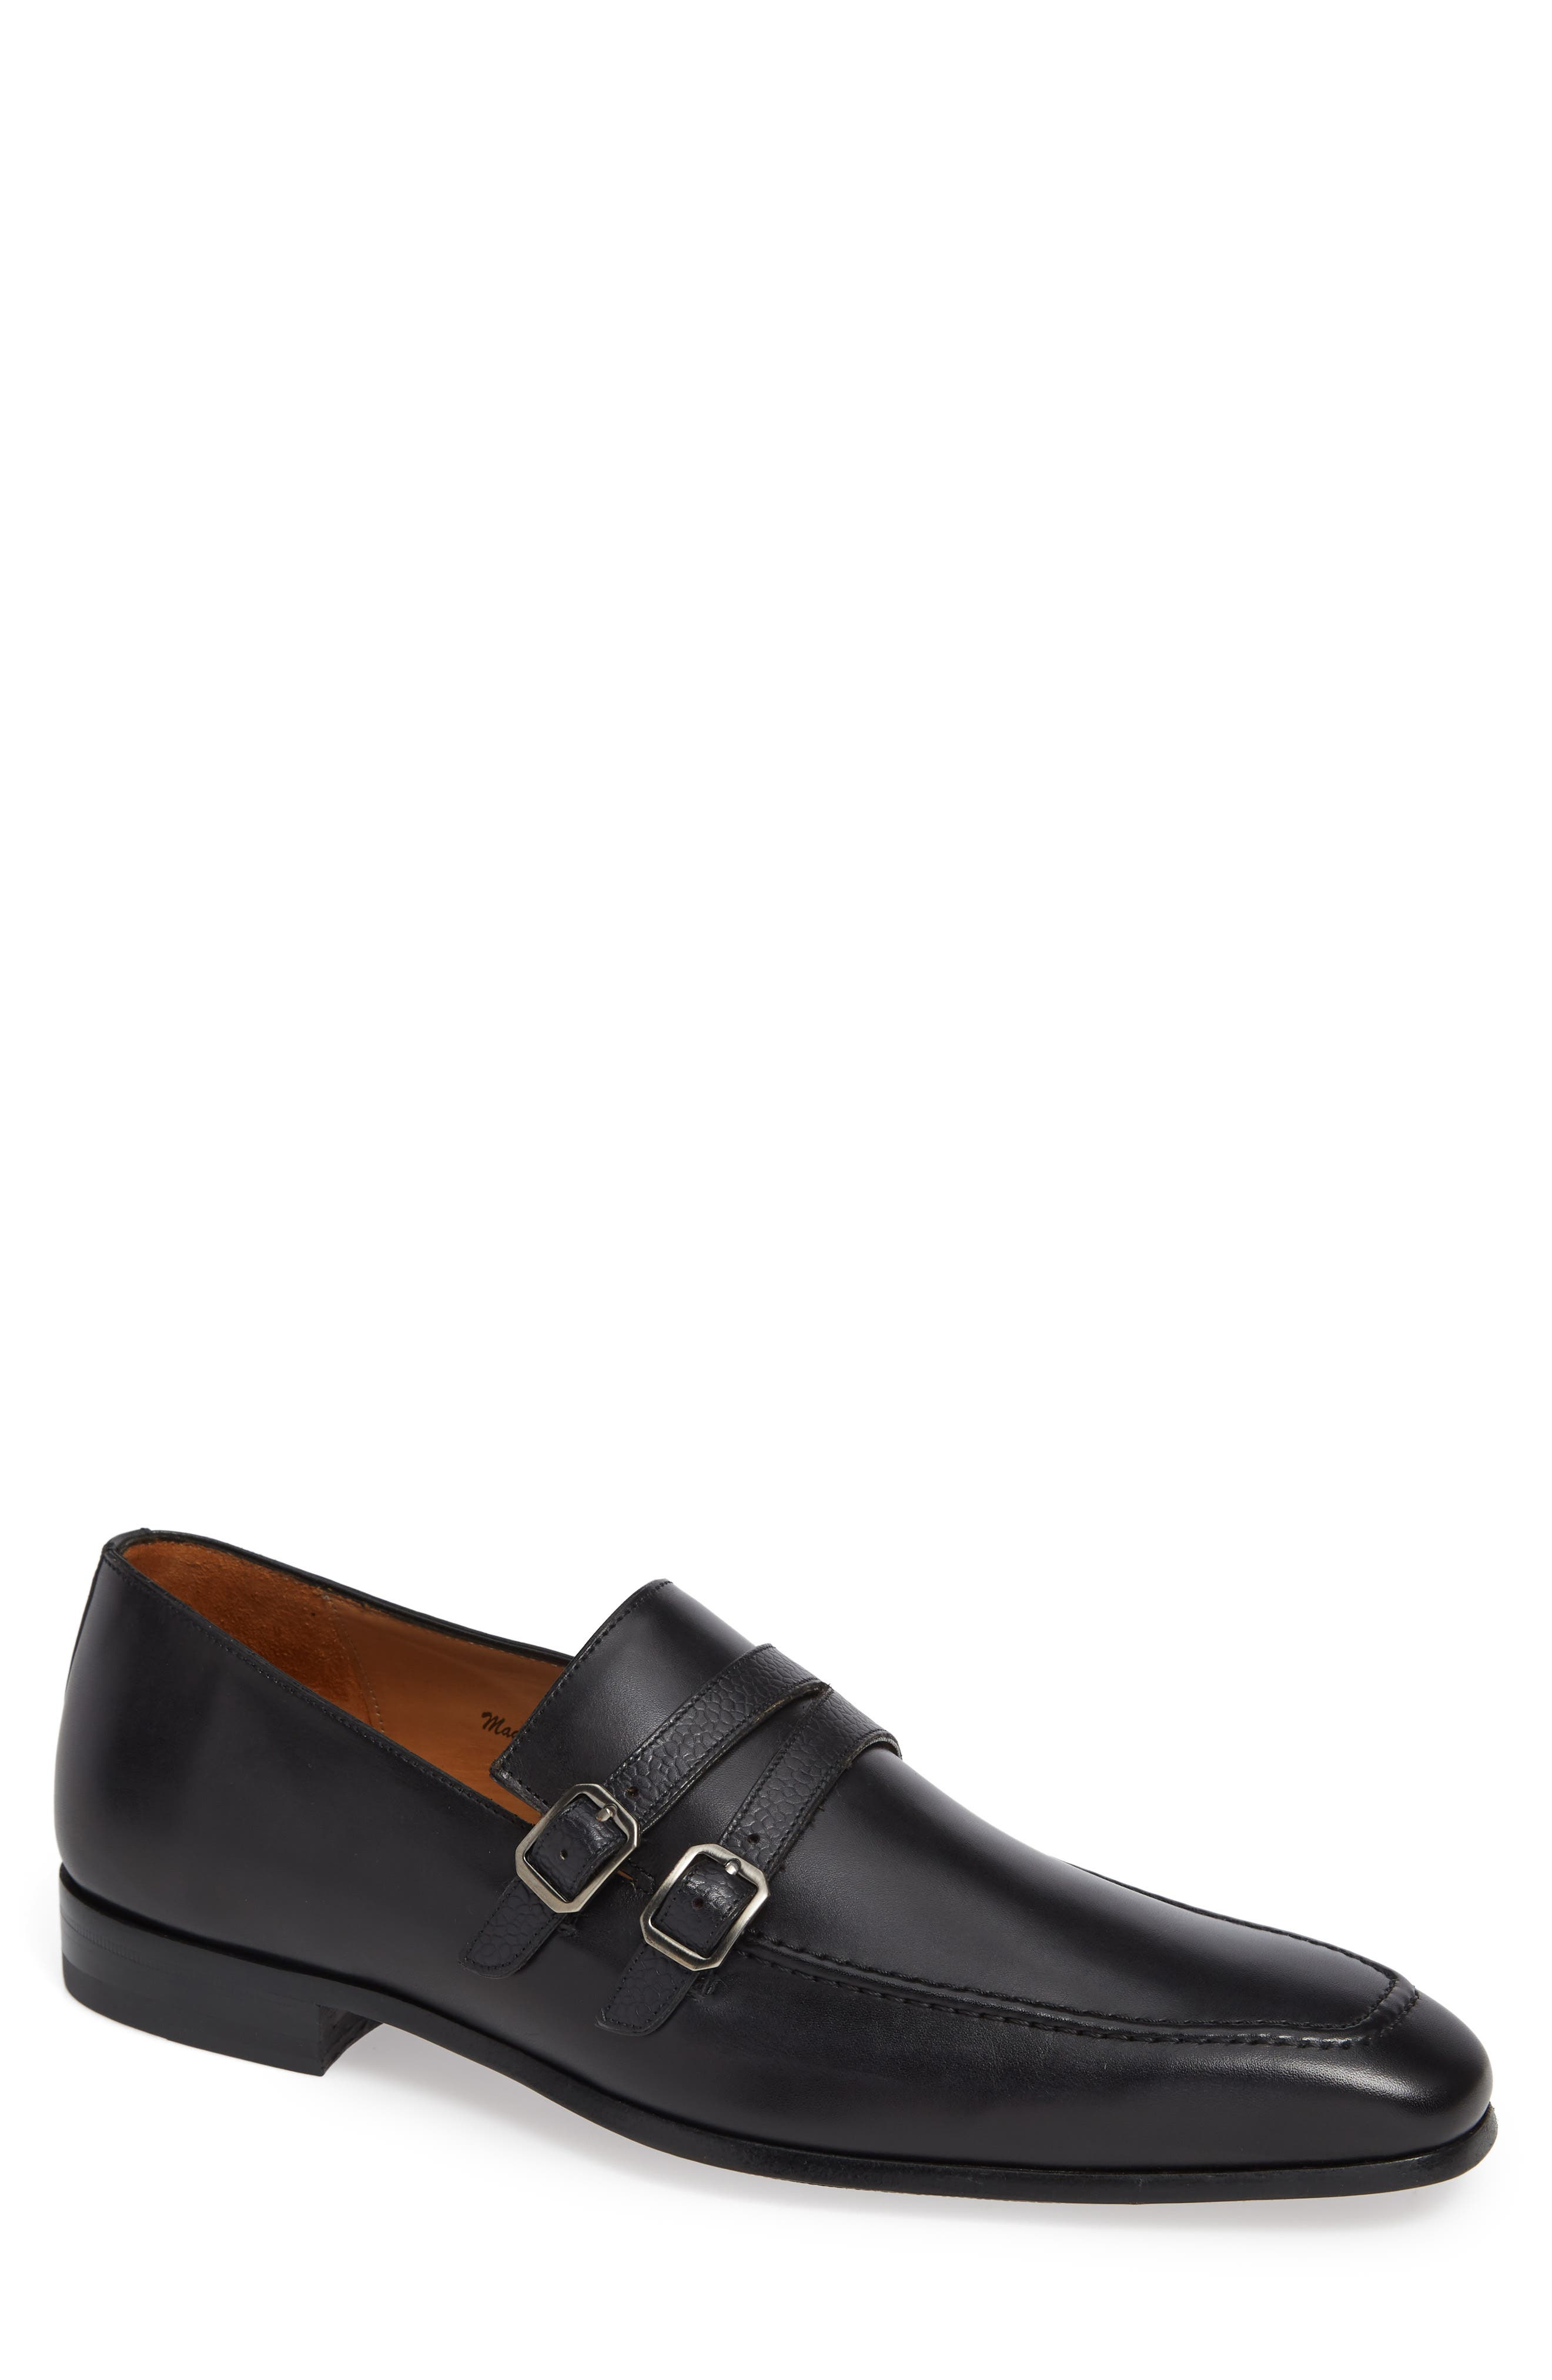 Callas Double Buckle Loafer, Main, color, BLACK LEATHER